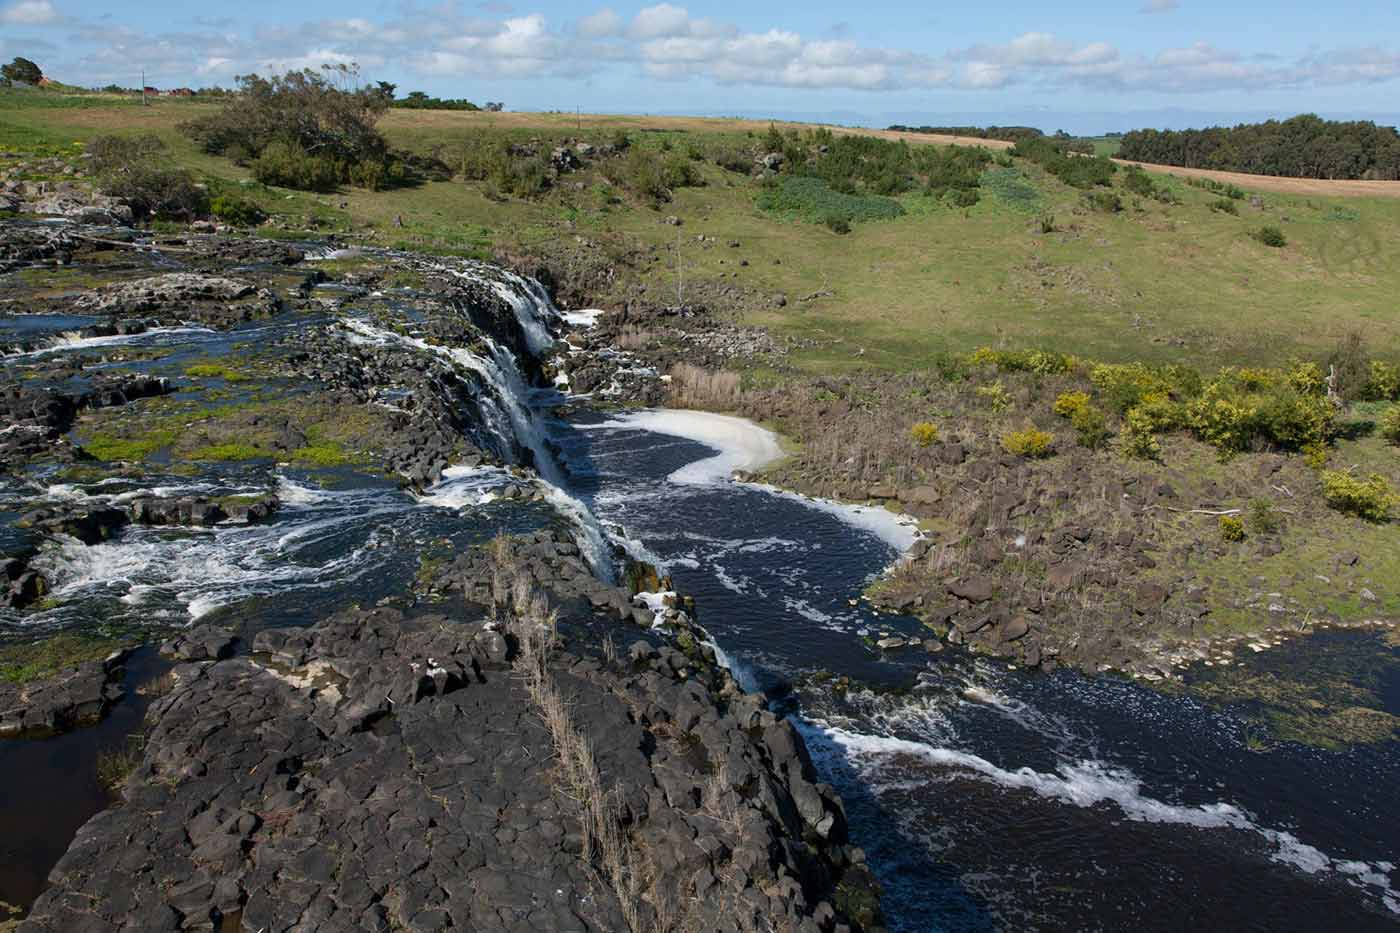 A colour photo of a green leafy landscape with a stream running through it at Warrnambool region, Victoria.